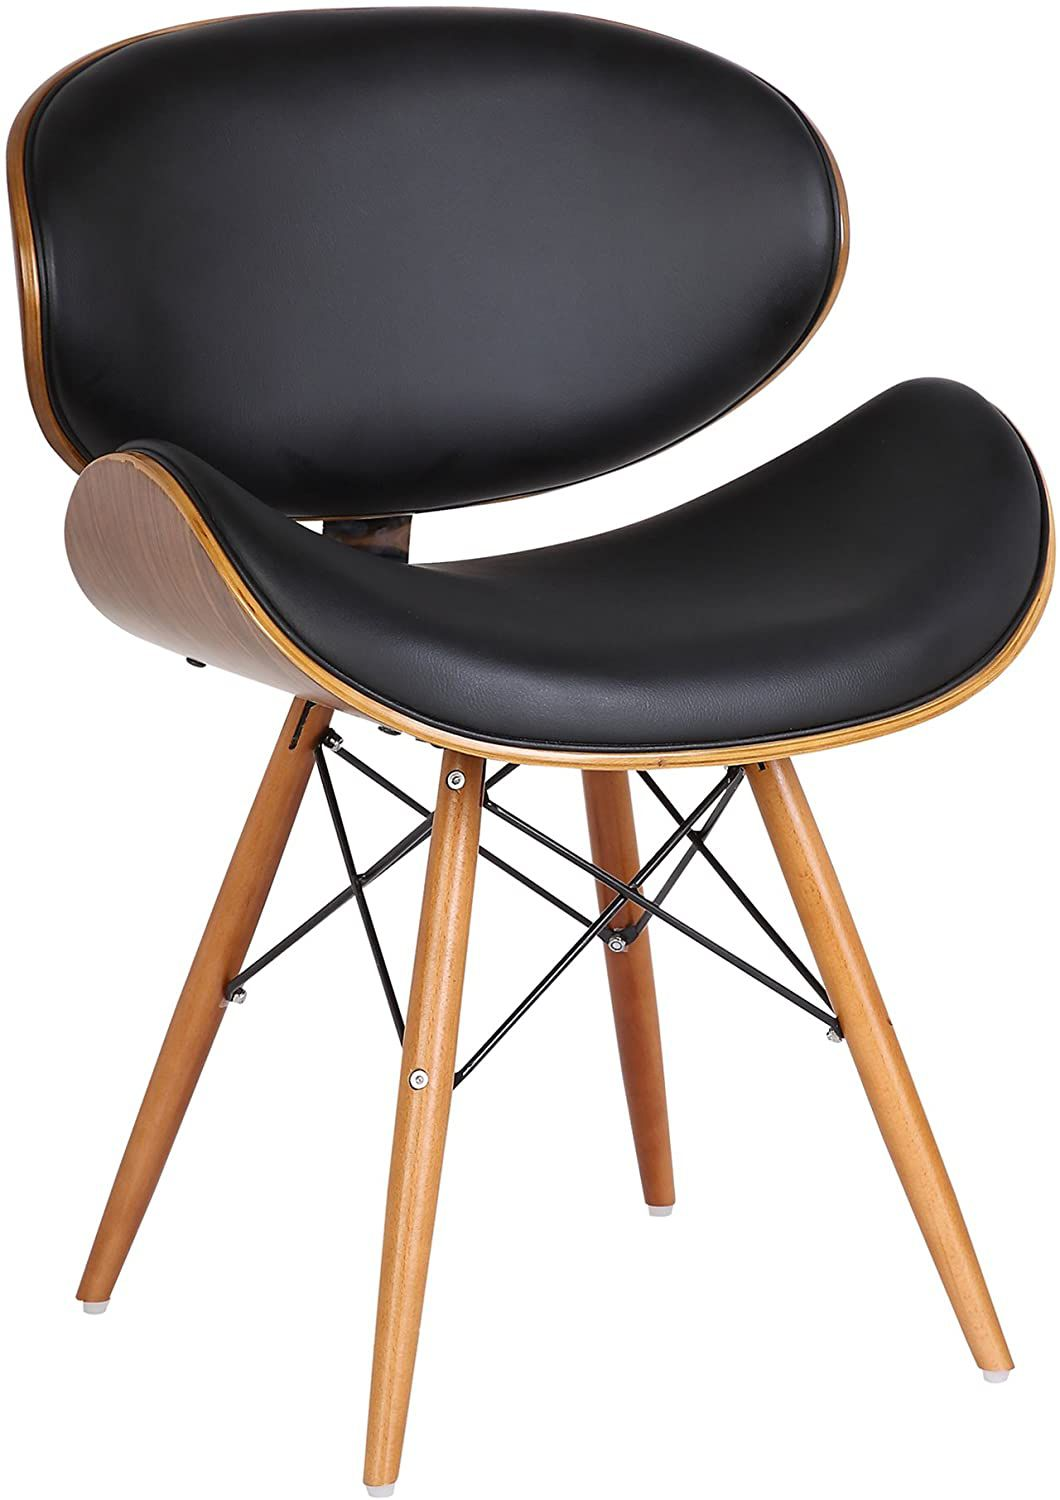 Armen Living Cassie Chair in Black Faux Leather and Walnut Wood Finish